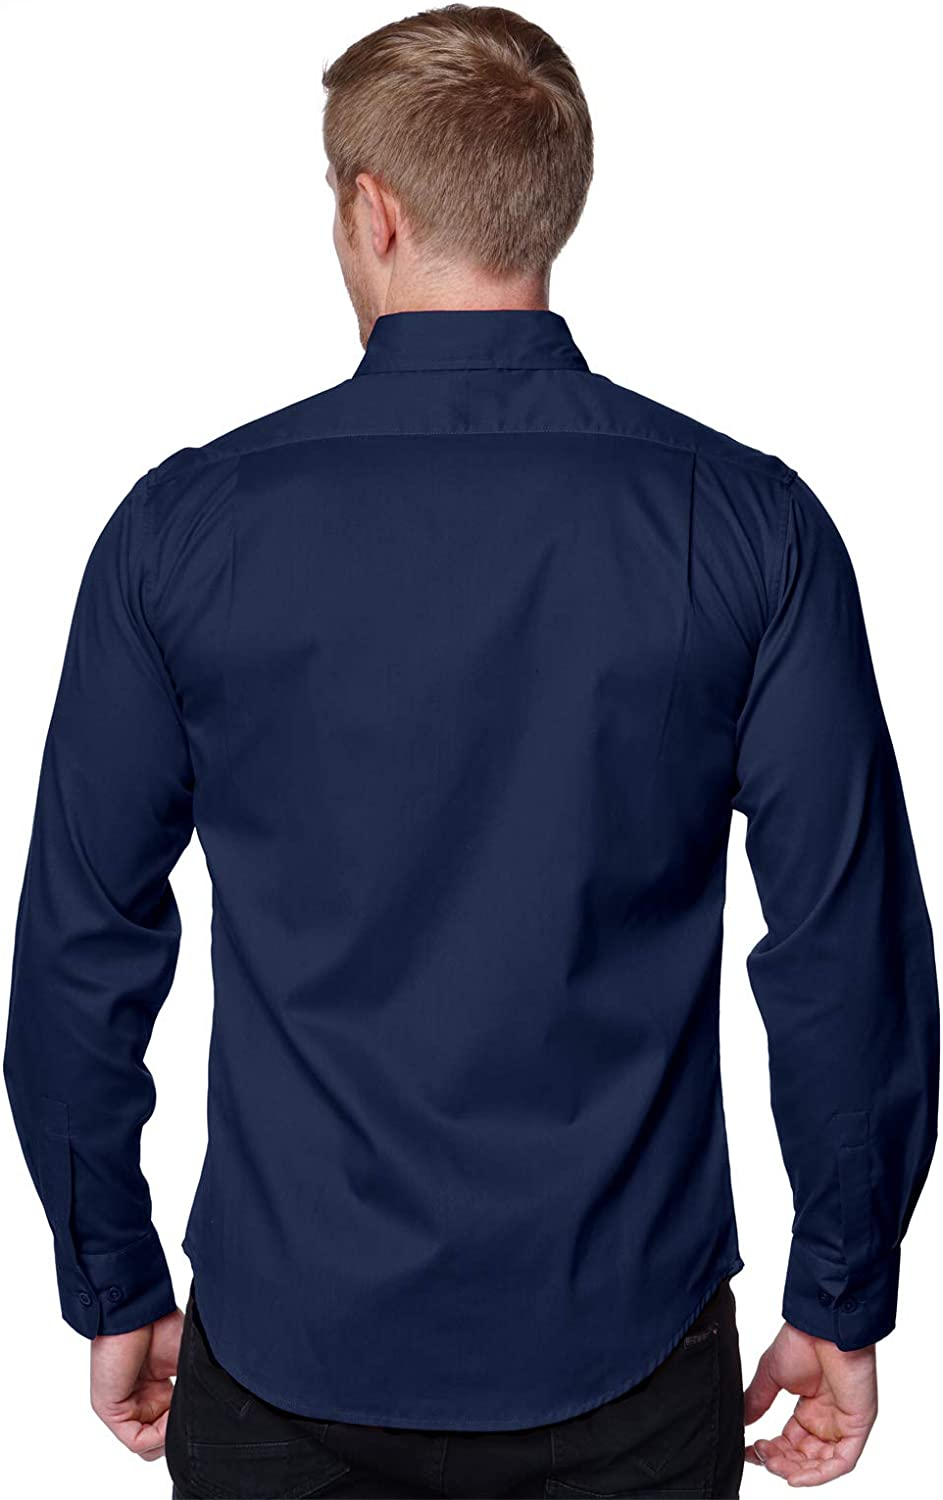 Big and Tall Long Sleeved Solid Shirts, for a Guy on a Budget